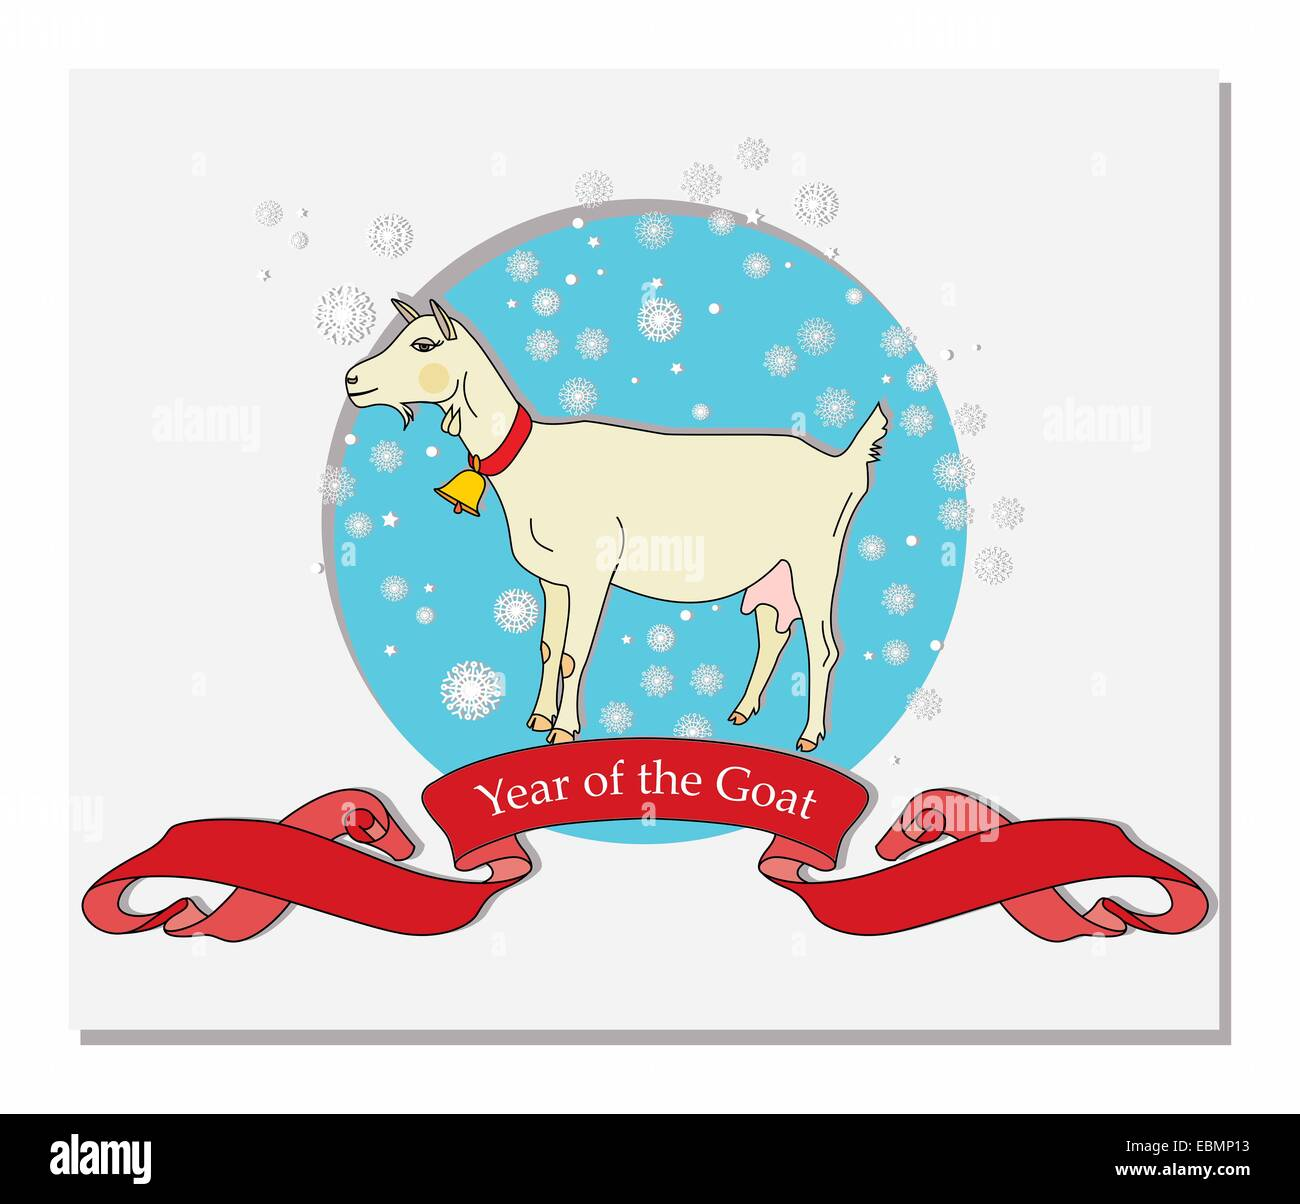 year of the Goat - Stock Image